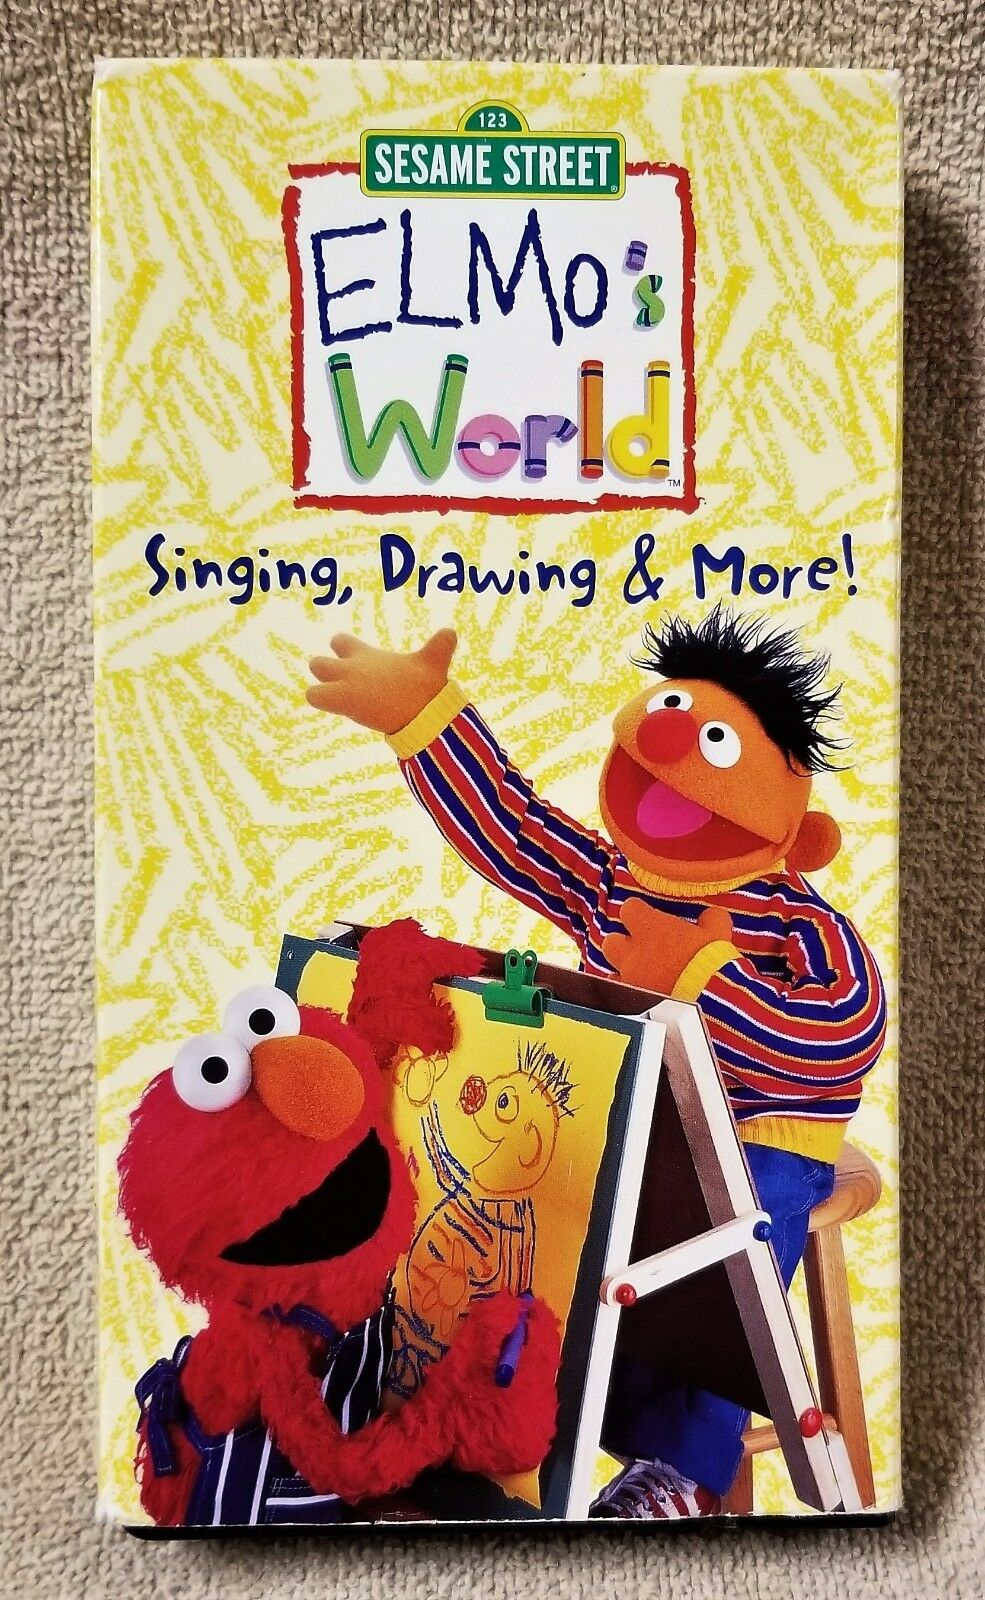 Elmos world singing drawing more vhs 2000 ebay